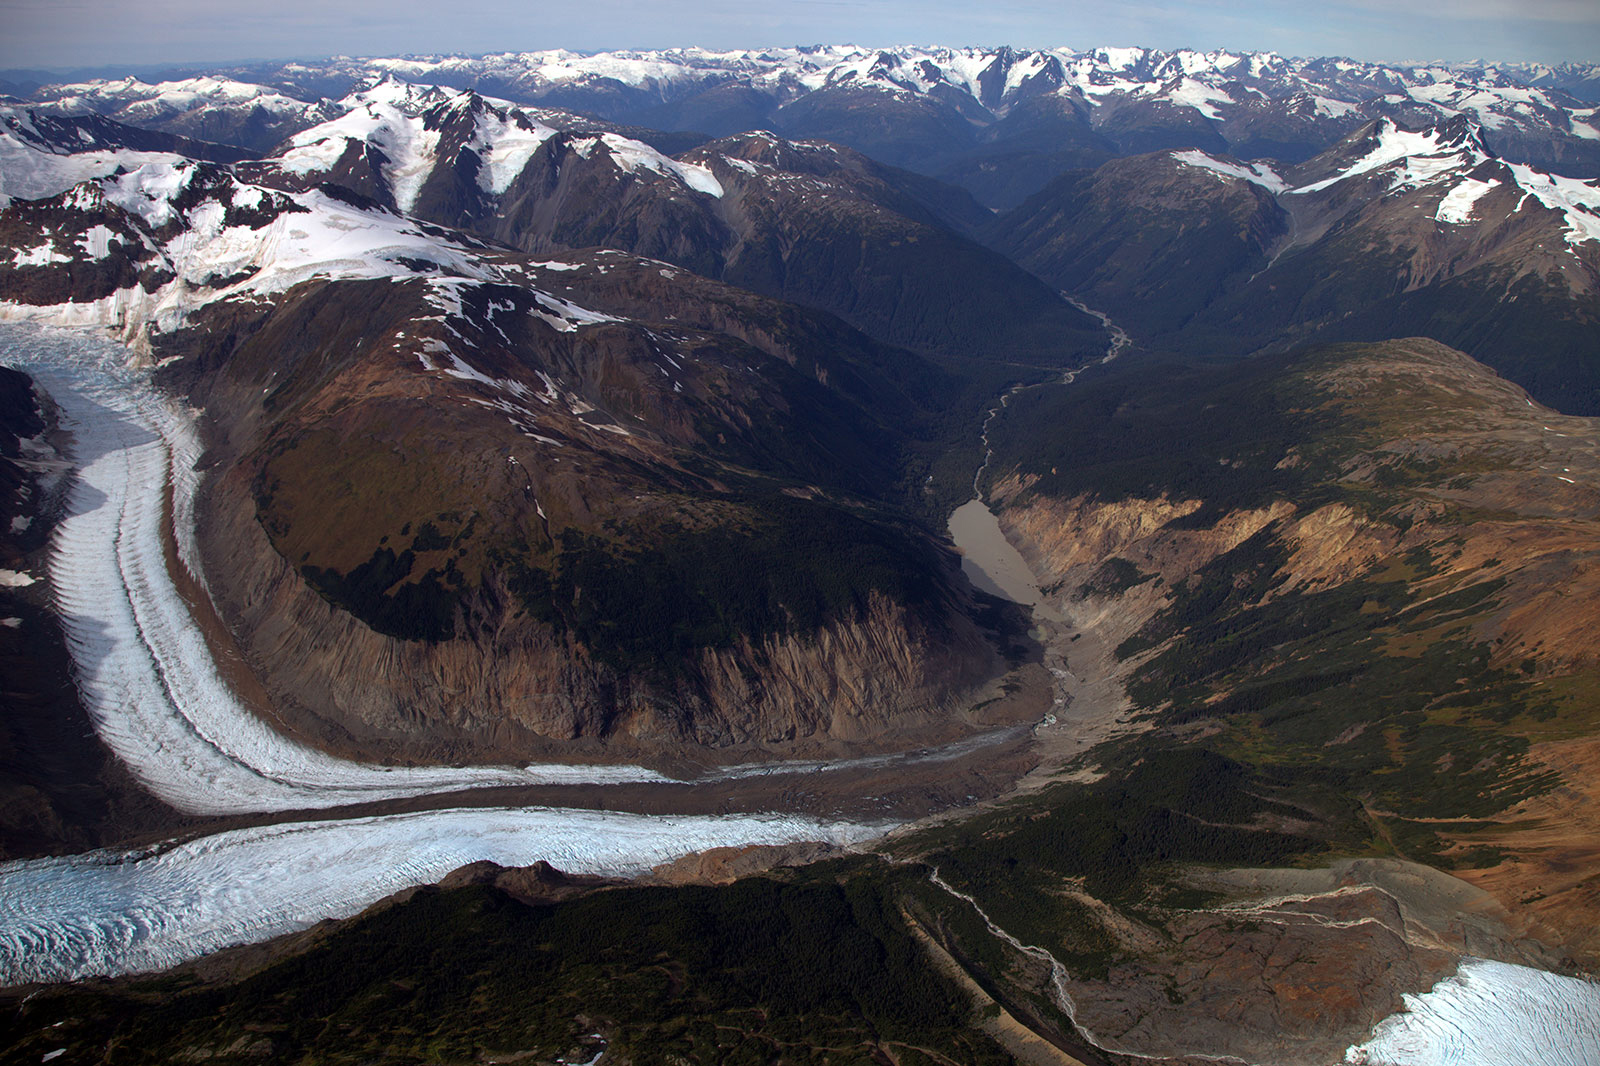 The proposed KSM Mine is located in the upper Unuk River watershed.